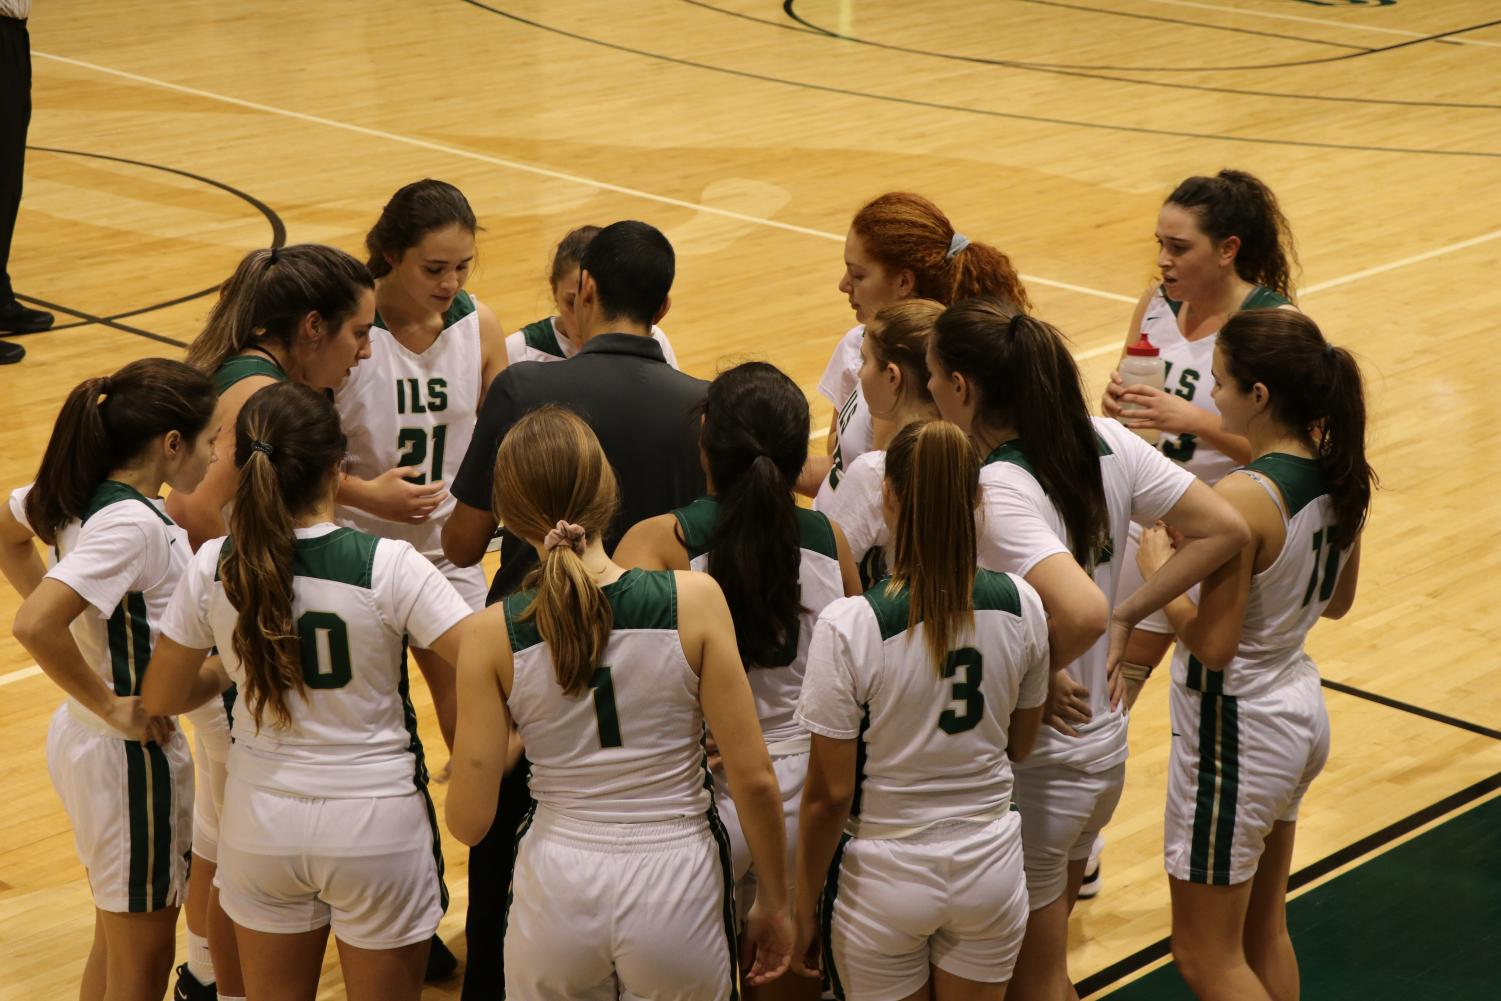 The ILS girls basketball team showed a great deal of fight in their comeback against North Broward Prep.